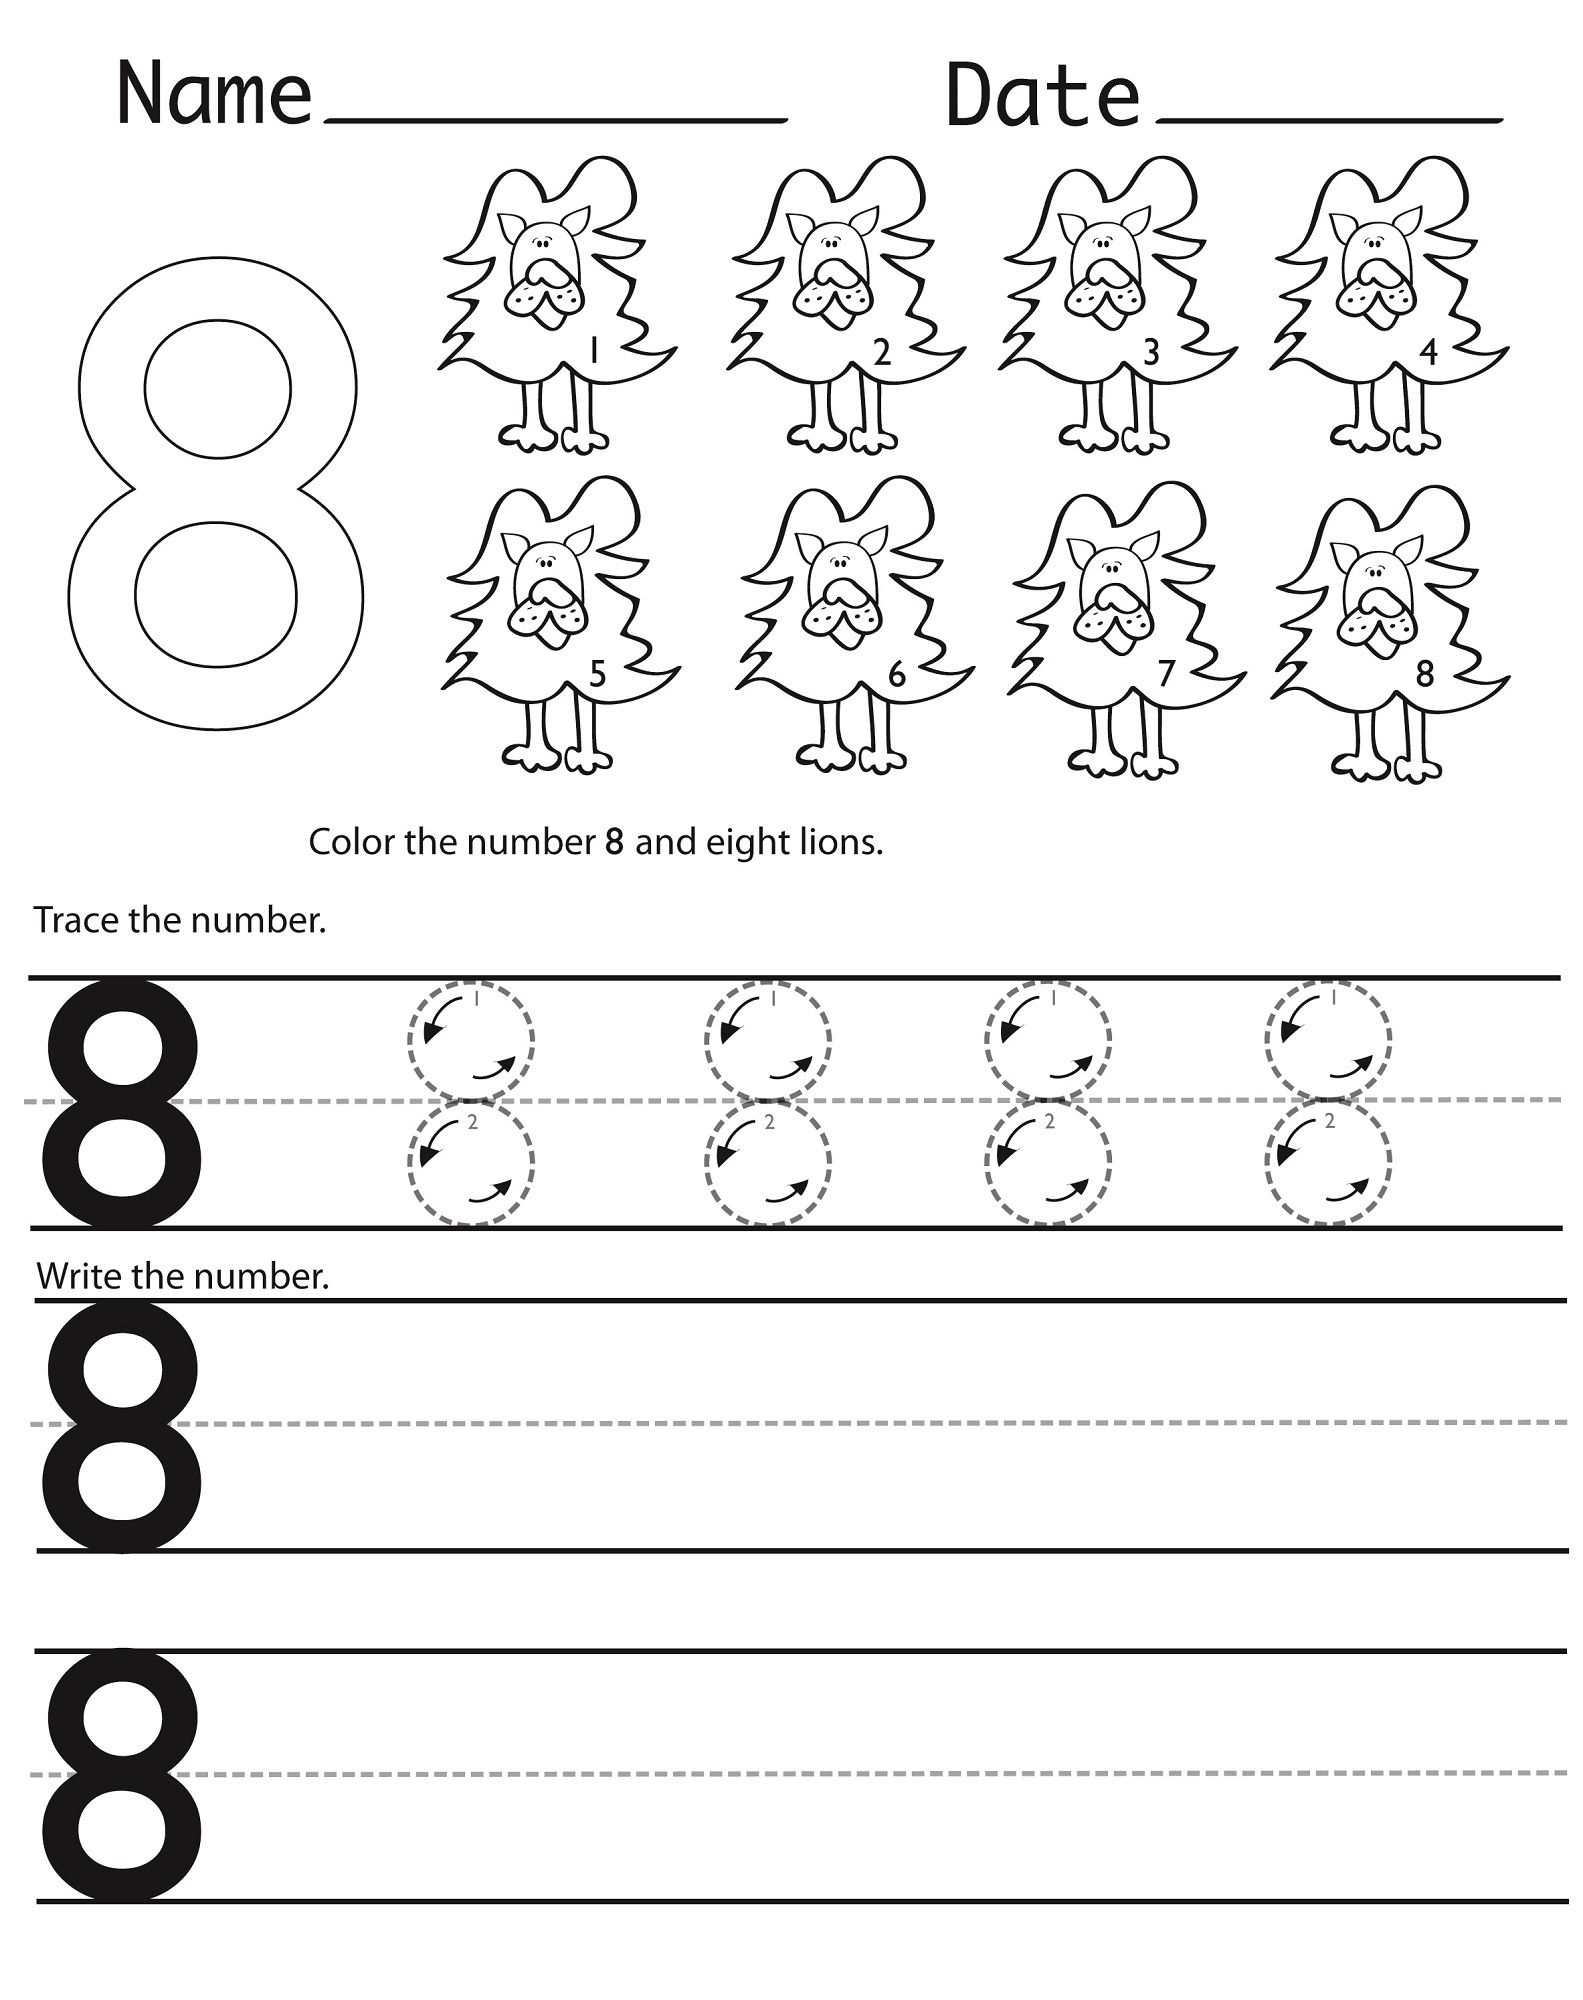 Free Number 8 Worksheet To Print In 2020 Number Worksheets Writing Numbers Math Coloring